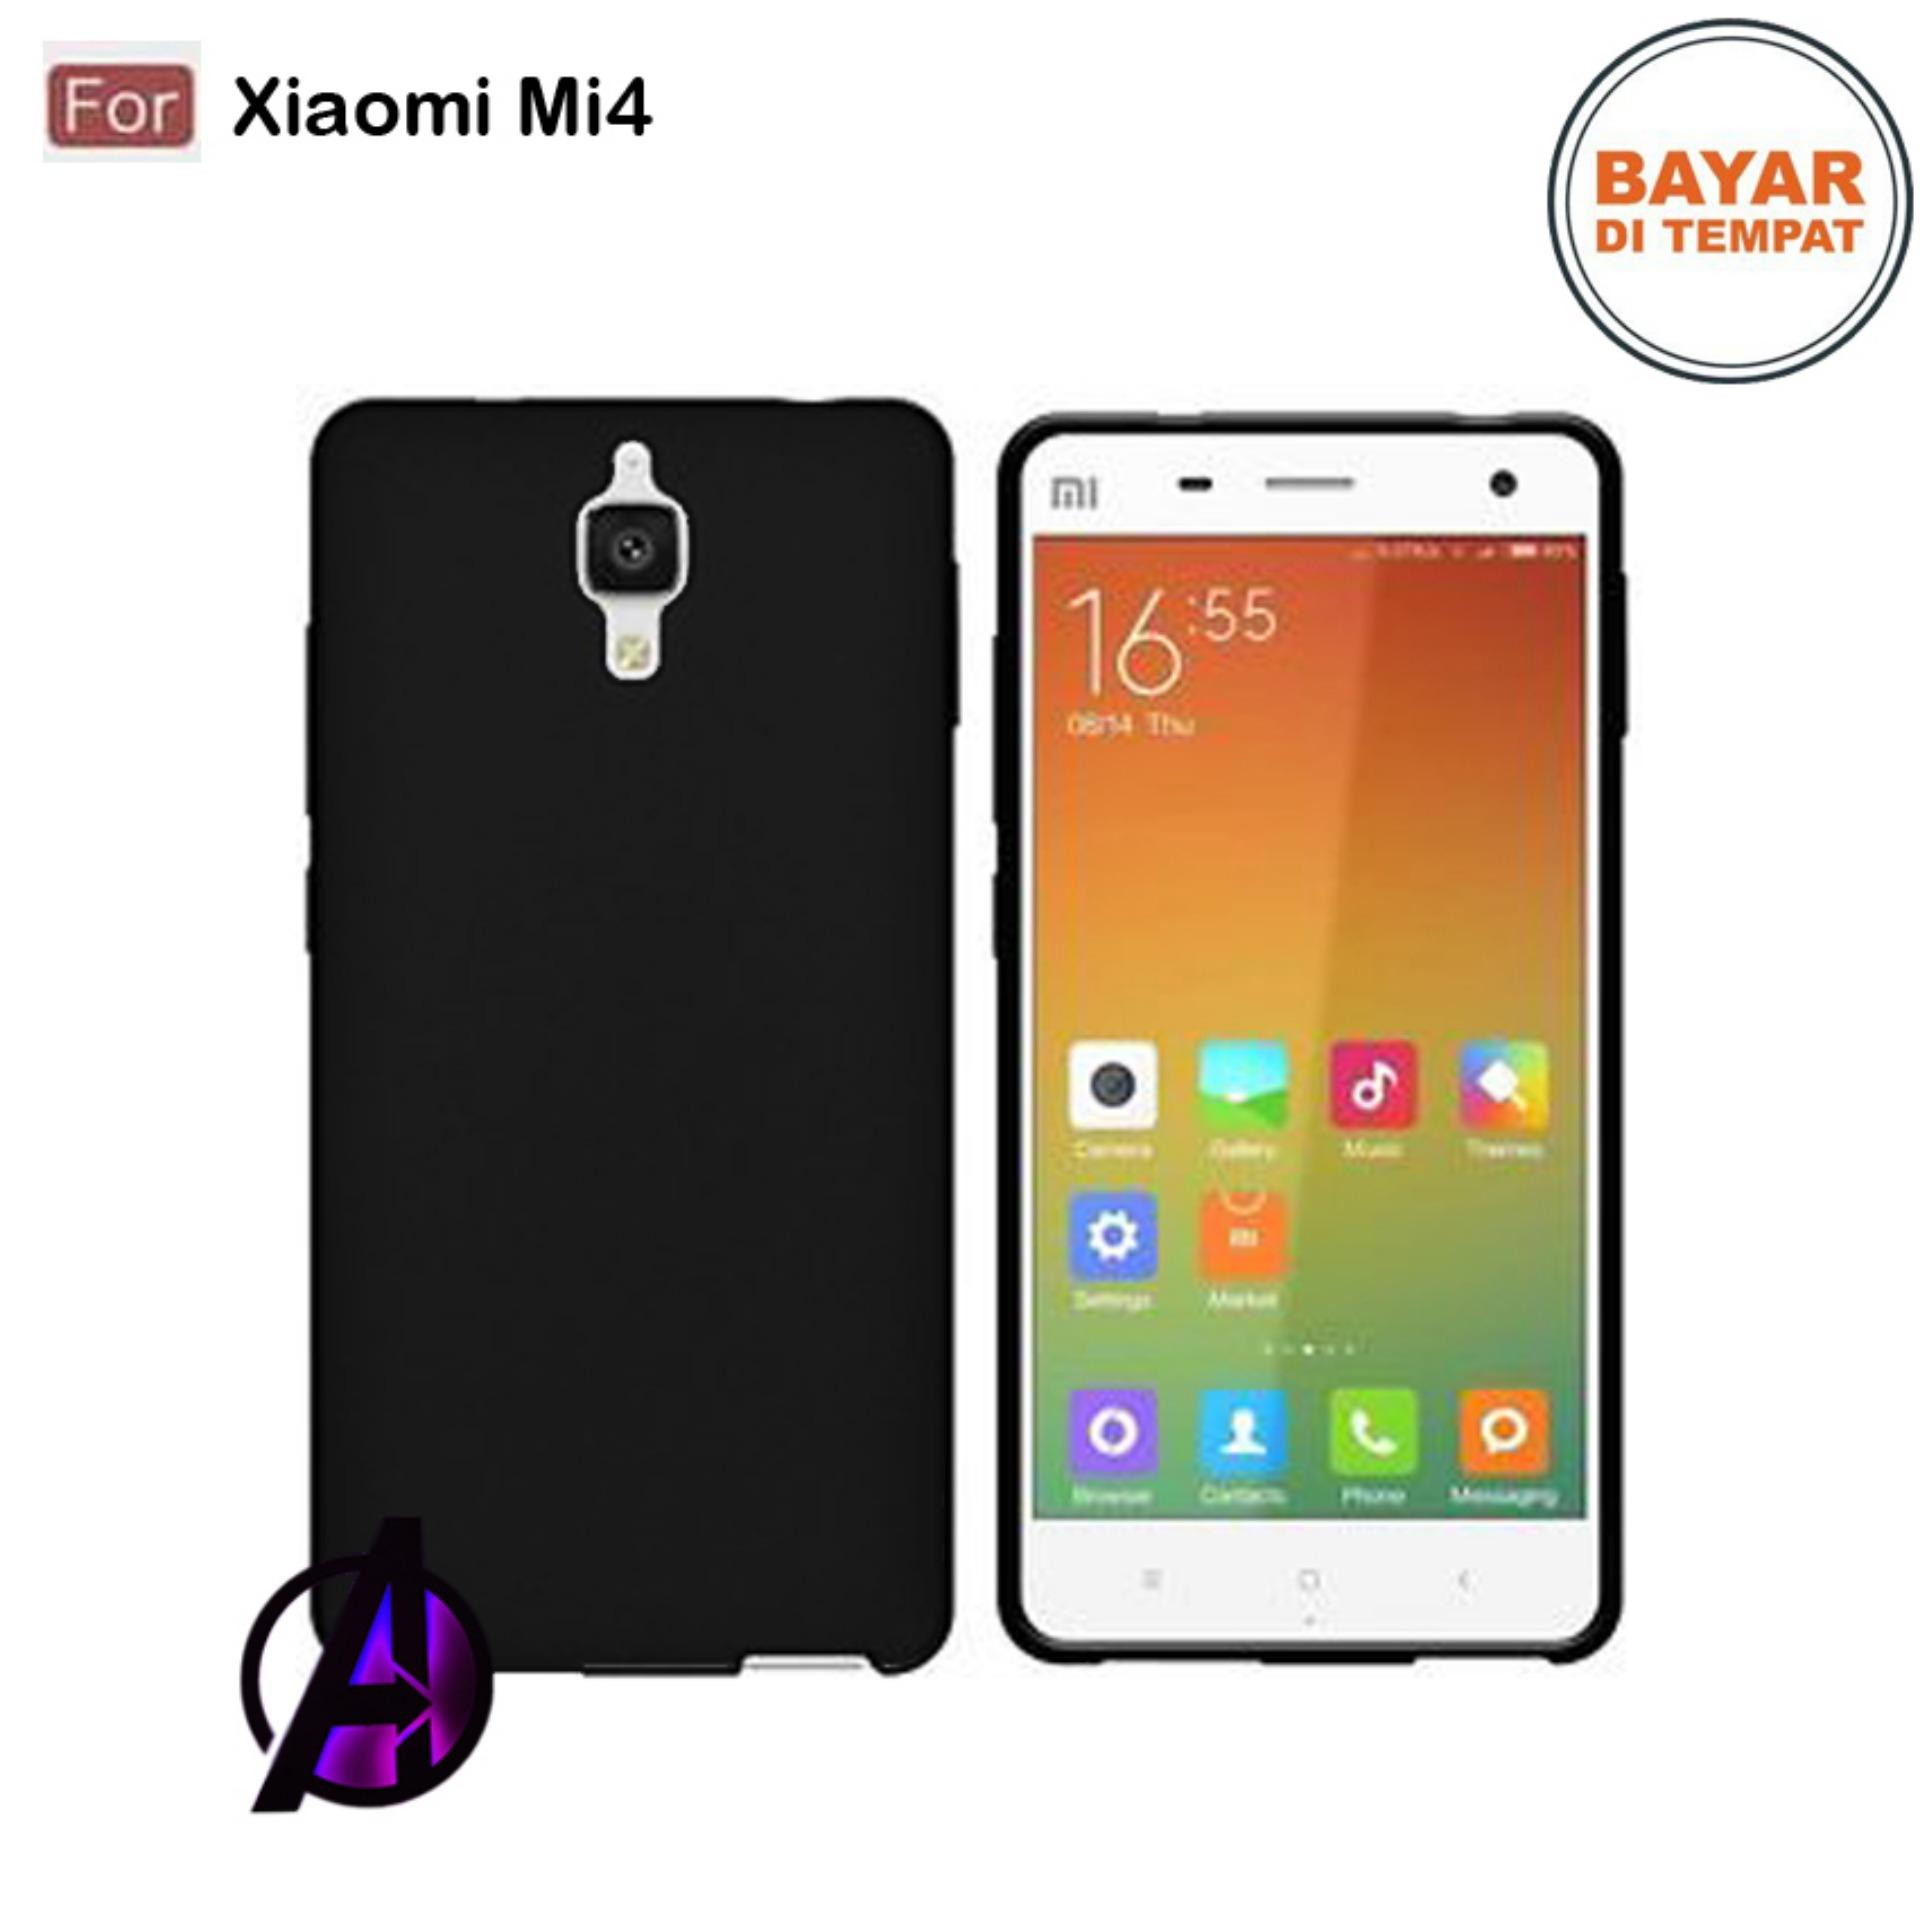 Case Matte Black Soft Slim Casing Handphone Xiaomi 4 / Mi4